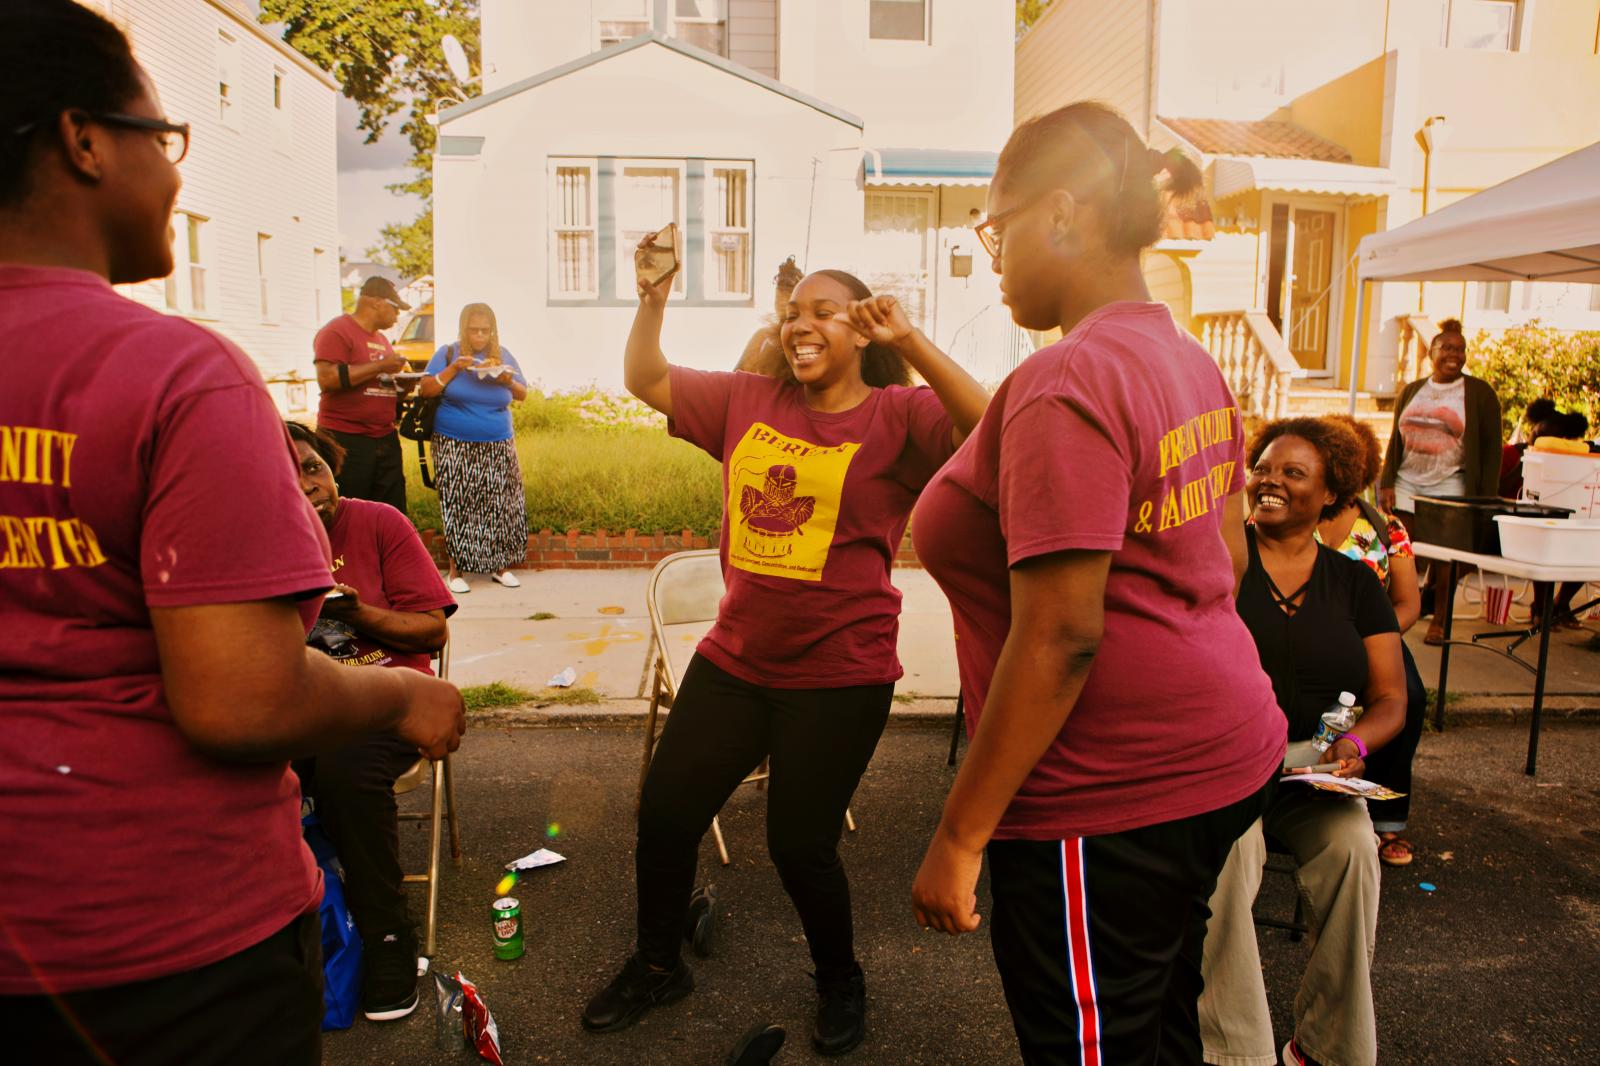 Kiana Betancourt dances during the block party in Laurelton neighborhood in Queens, New York hosted by Sudan Deane. Betancourt is part of Berean Drumline that marched during the block party.